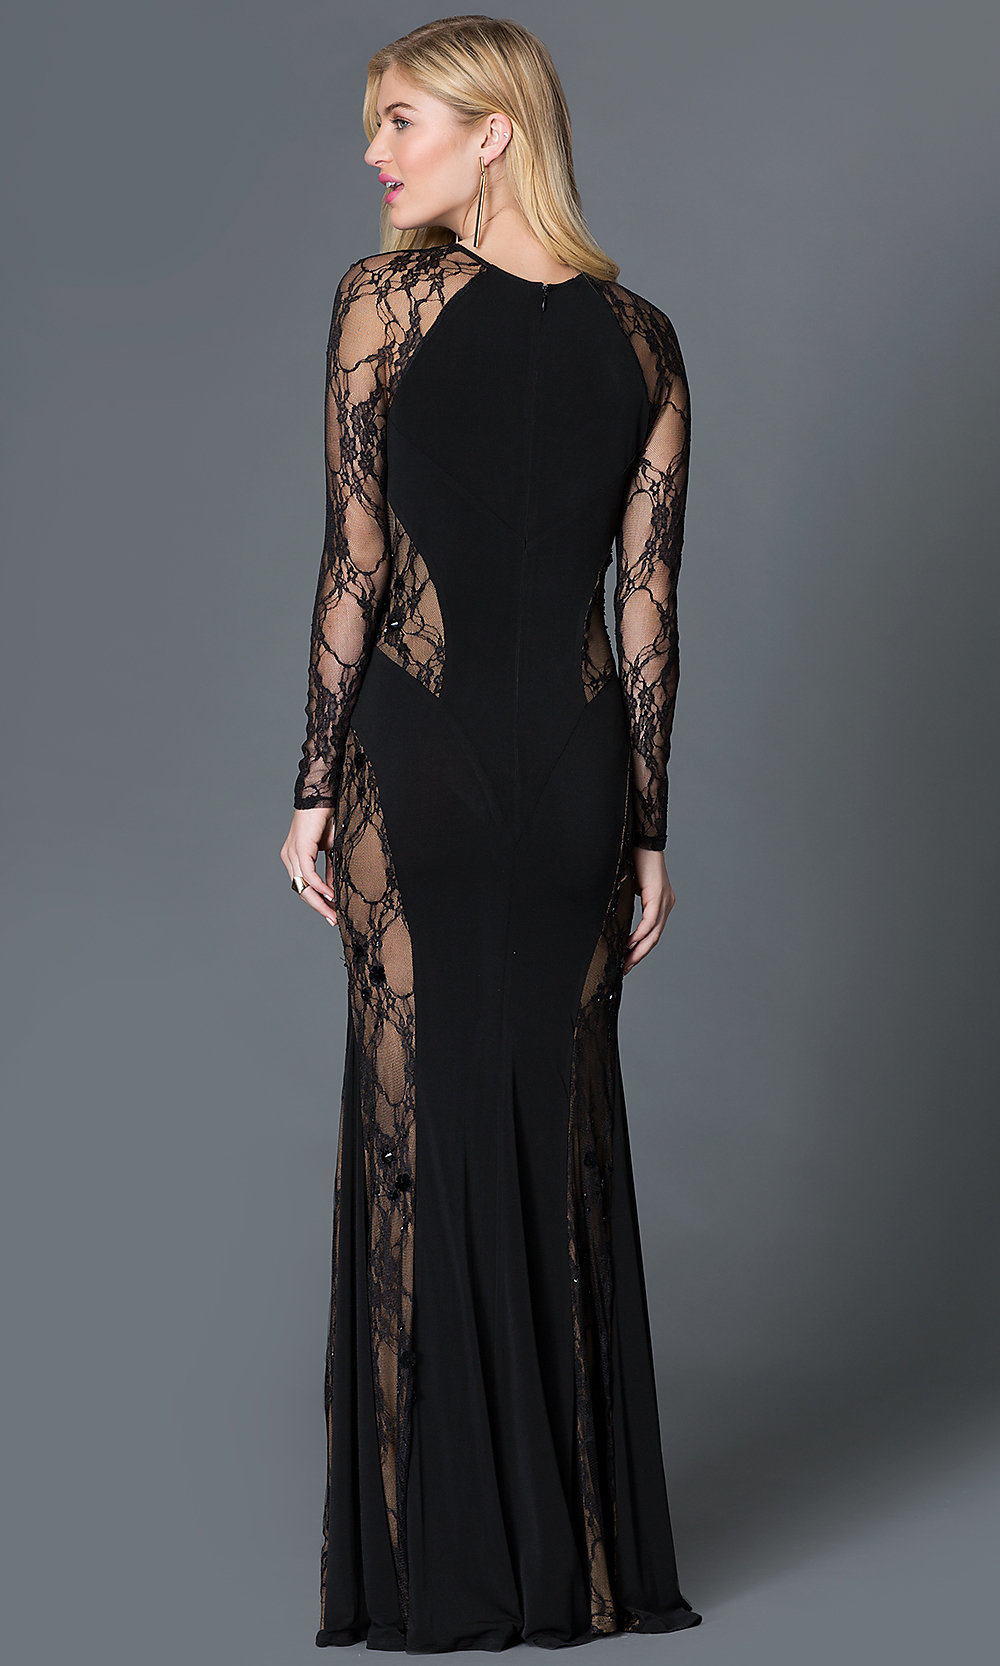 Black lace floor length dresses